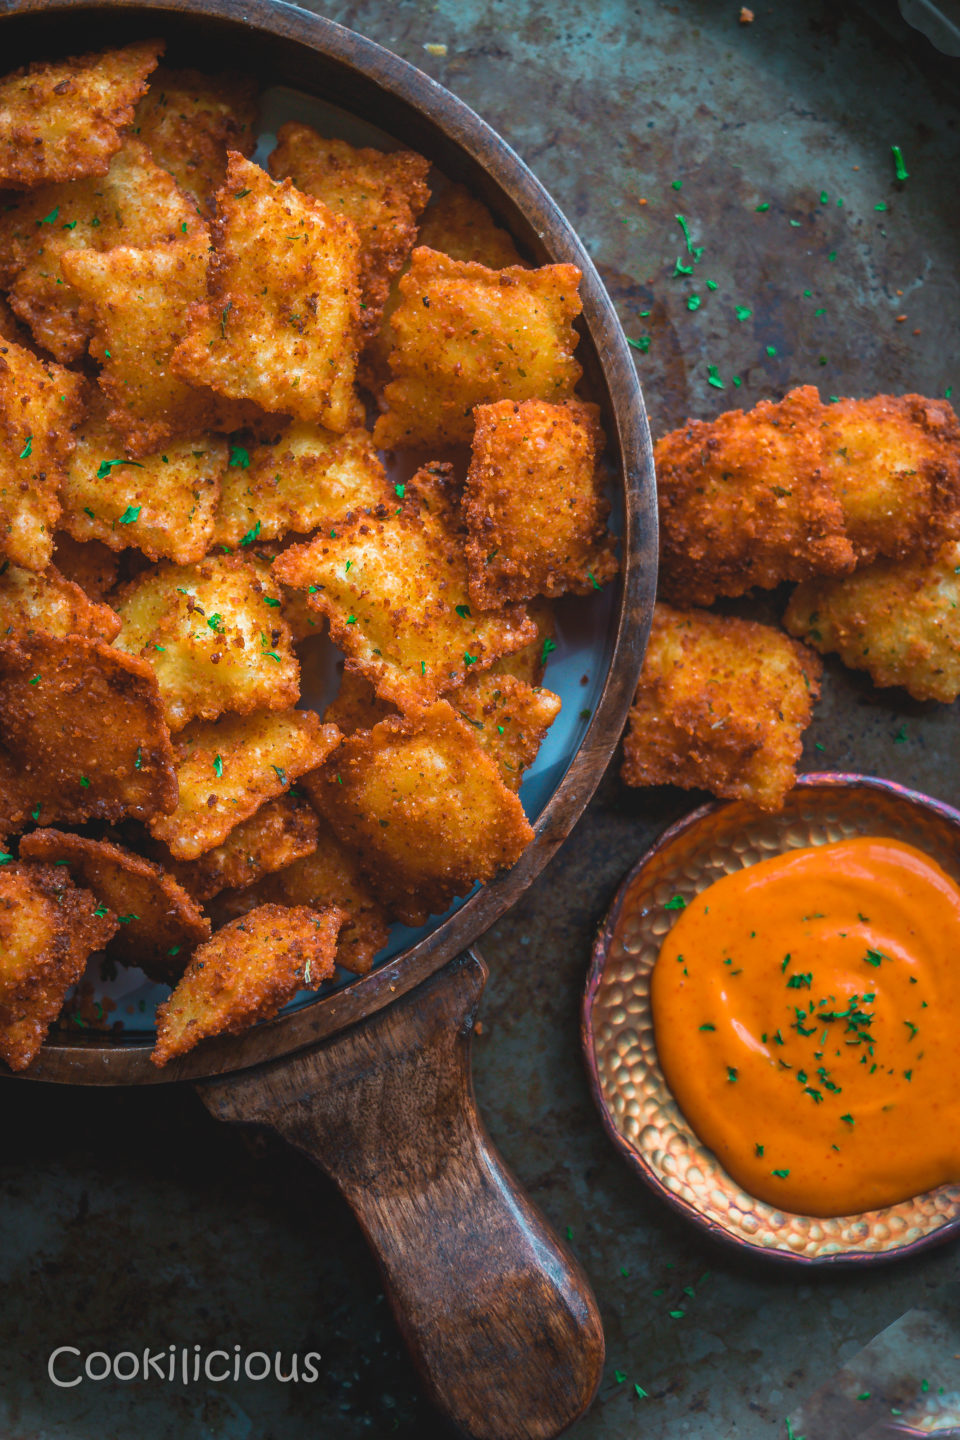 image of half a tray filled with Copycat Olive Garden Cheesy Fried Ravioli